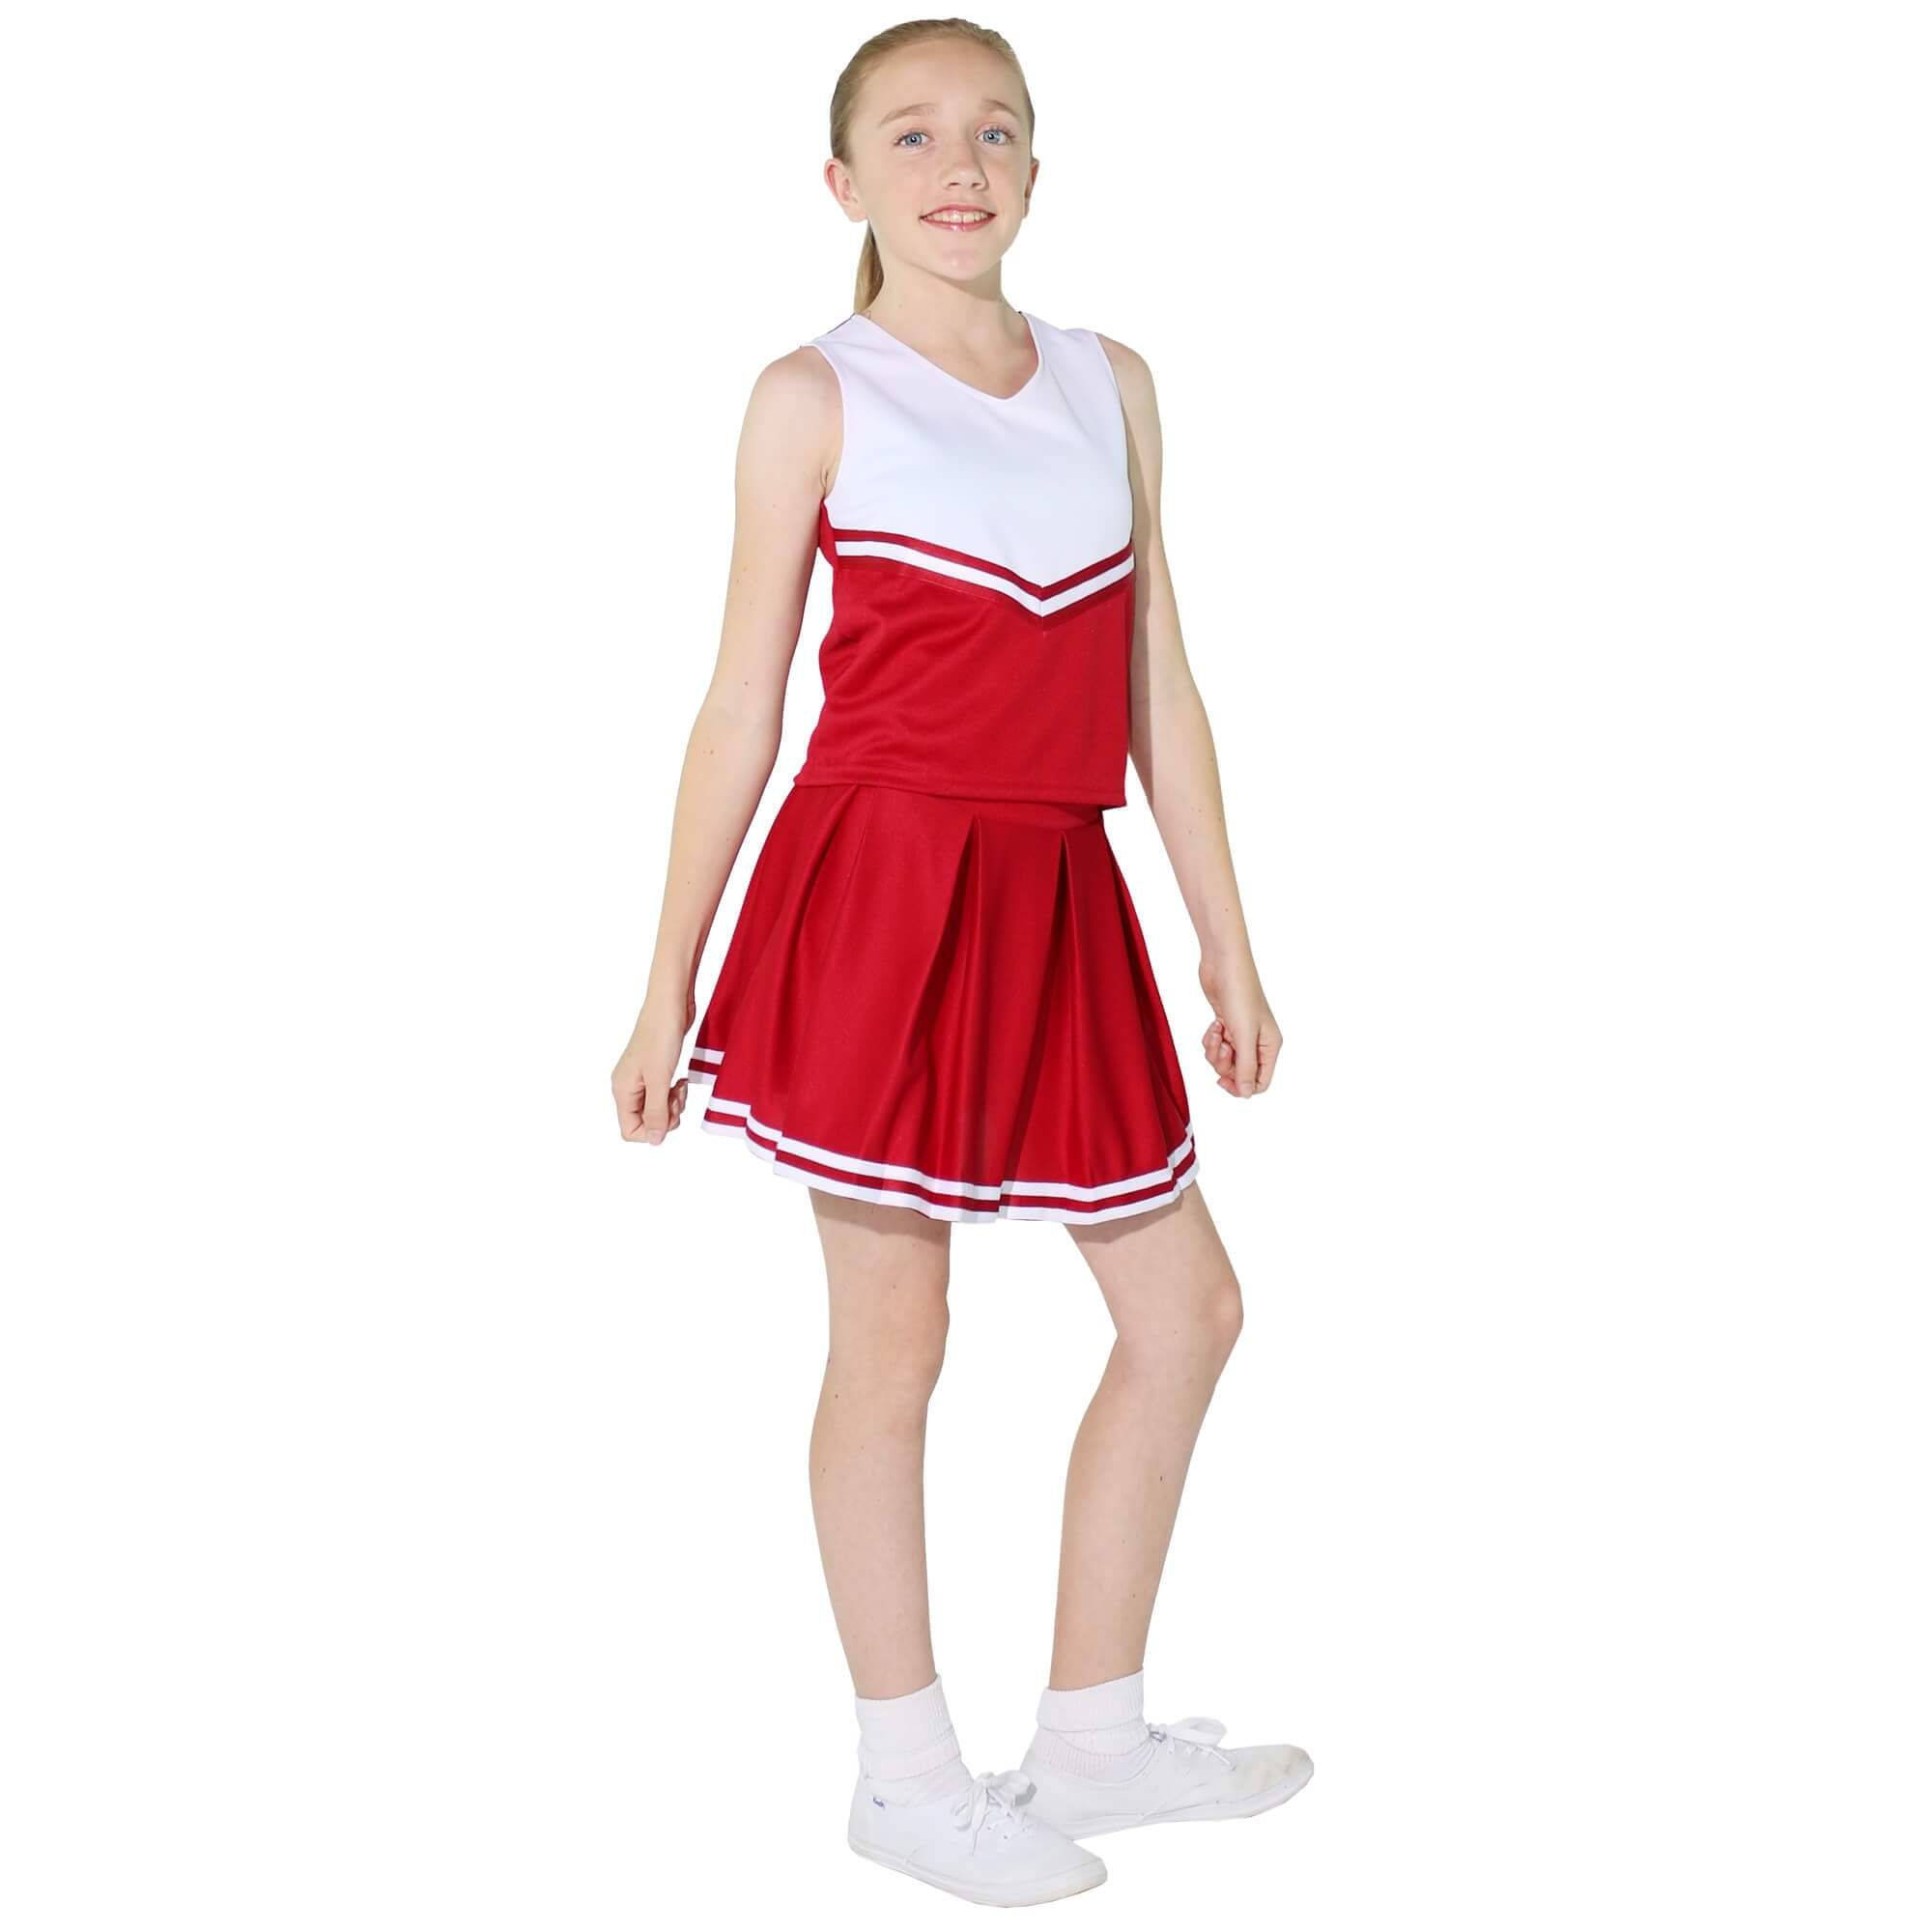 Danzcue Child V-Neck Knit Pleat Skirt Cheerleaders Uniform Set